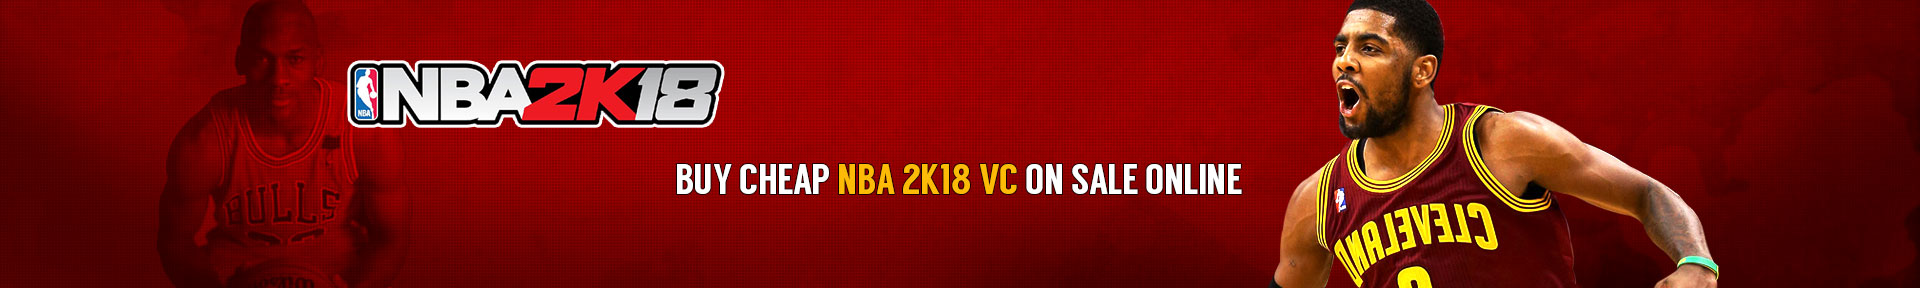 Best Store to Buy Cheap NBA 2K18 VC Online - 5Mmo com